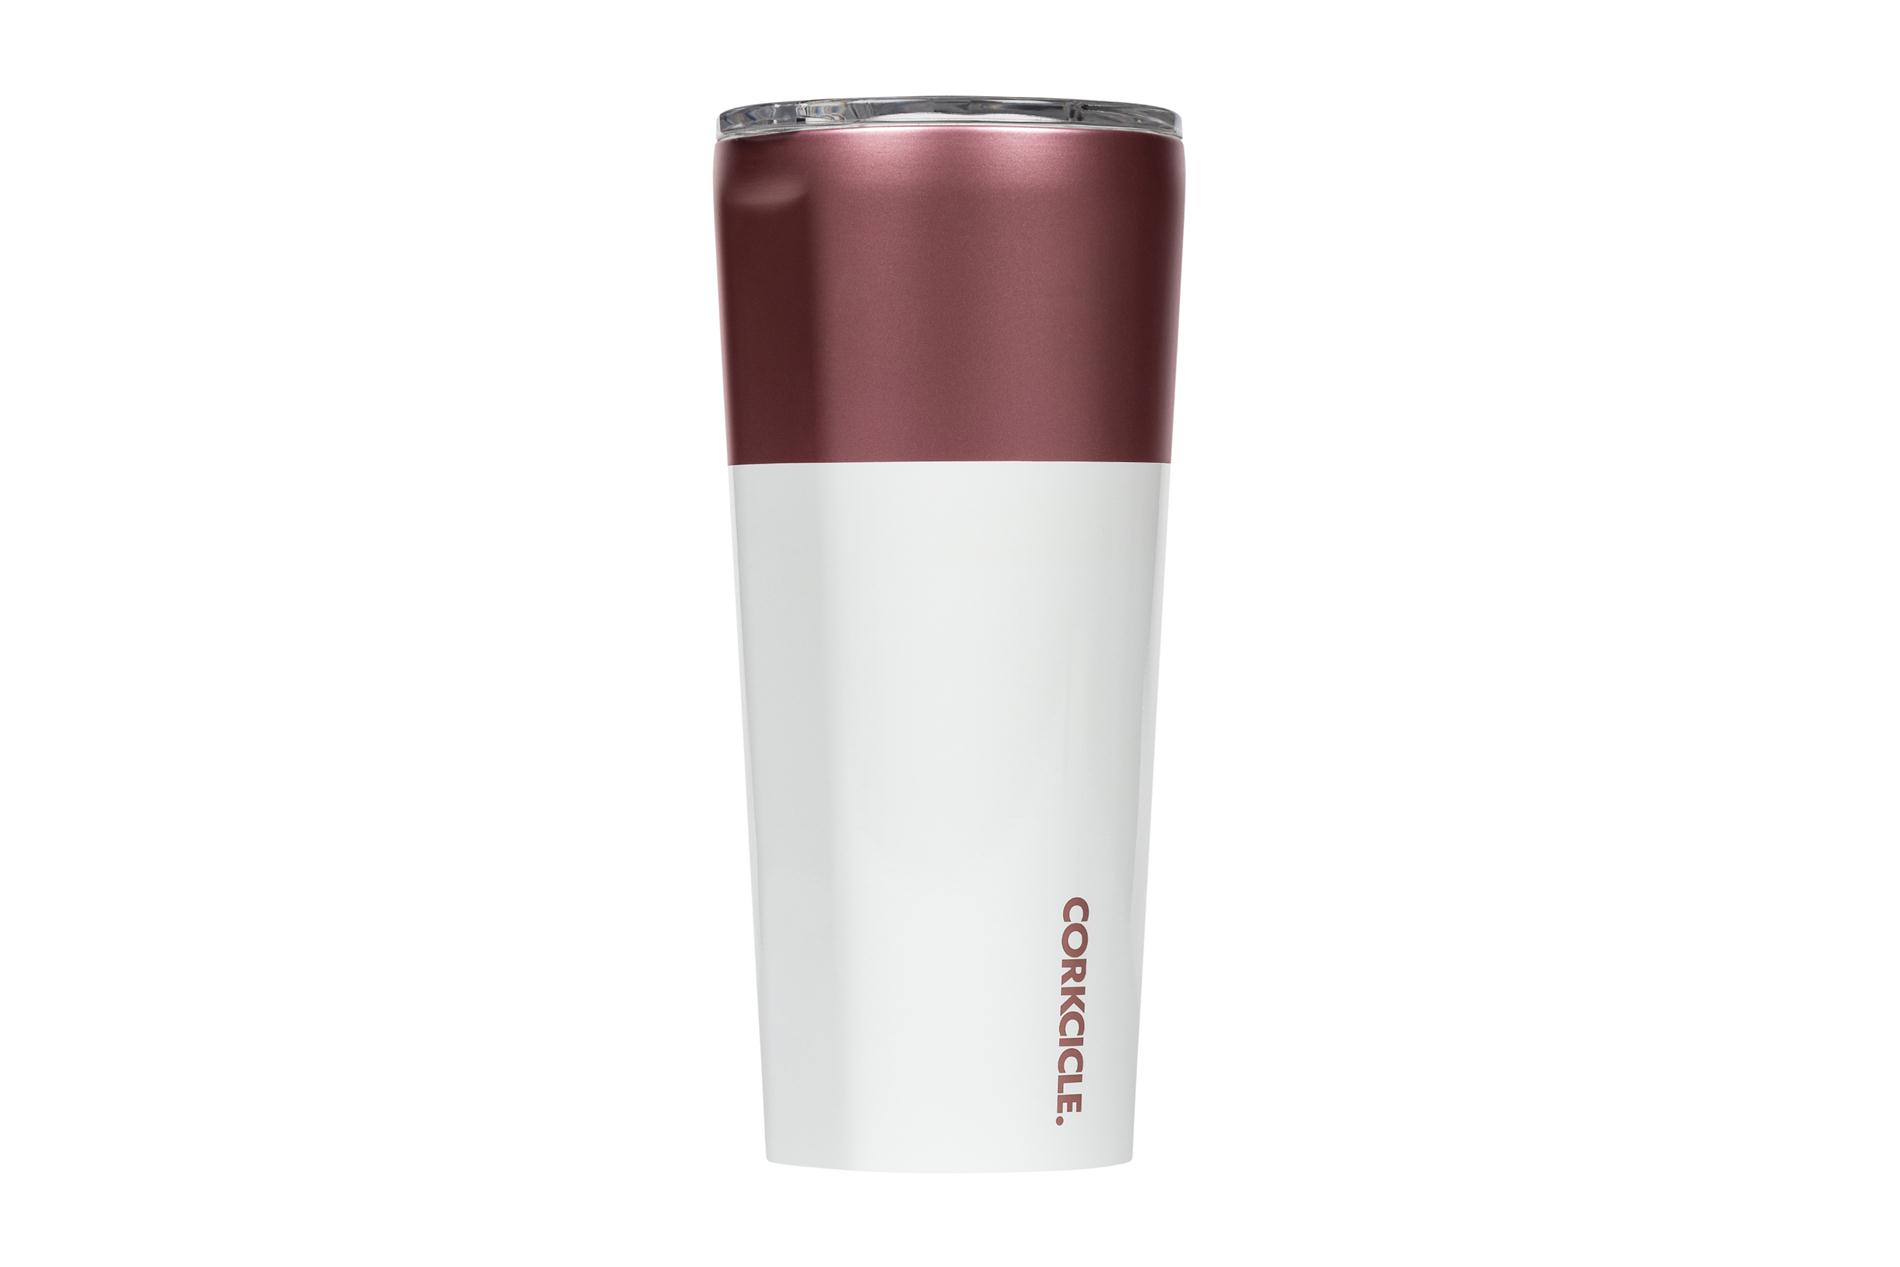 Corkcicle Becher / Thermo Isolierbecher Rosé 475 ml Color Block